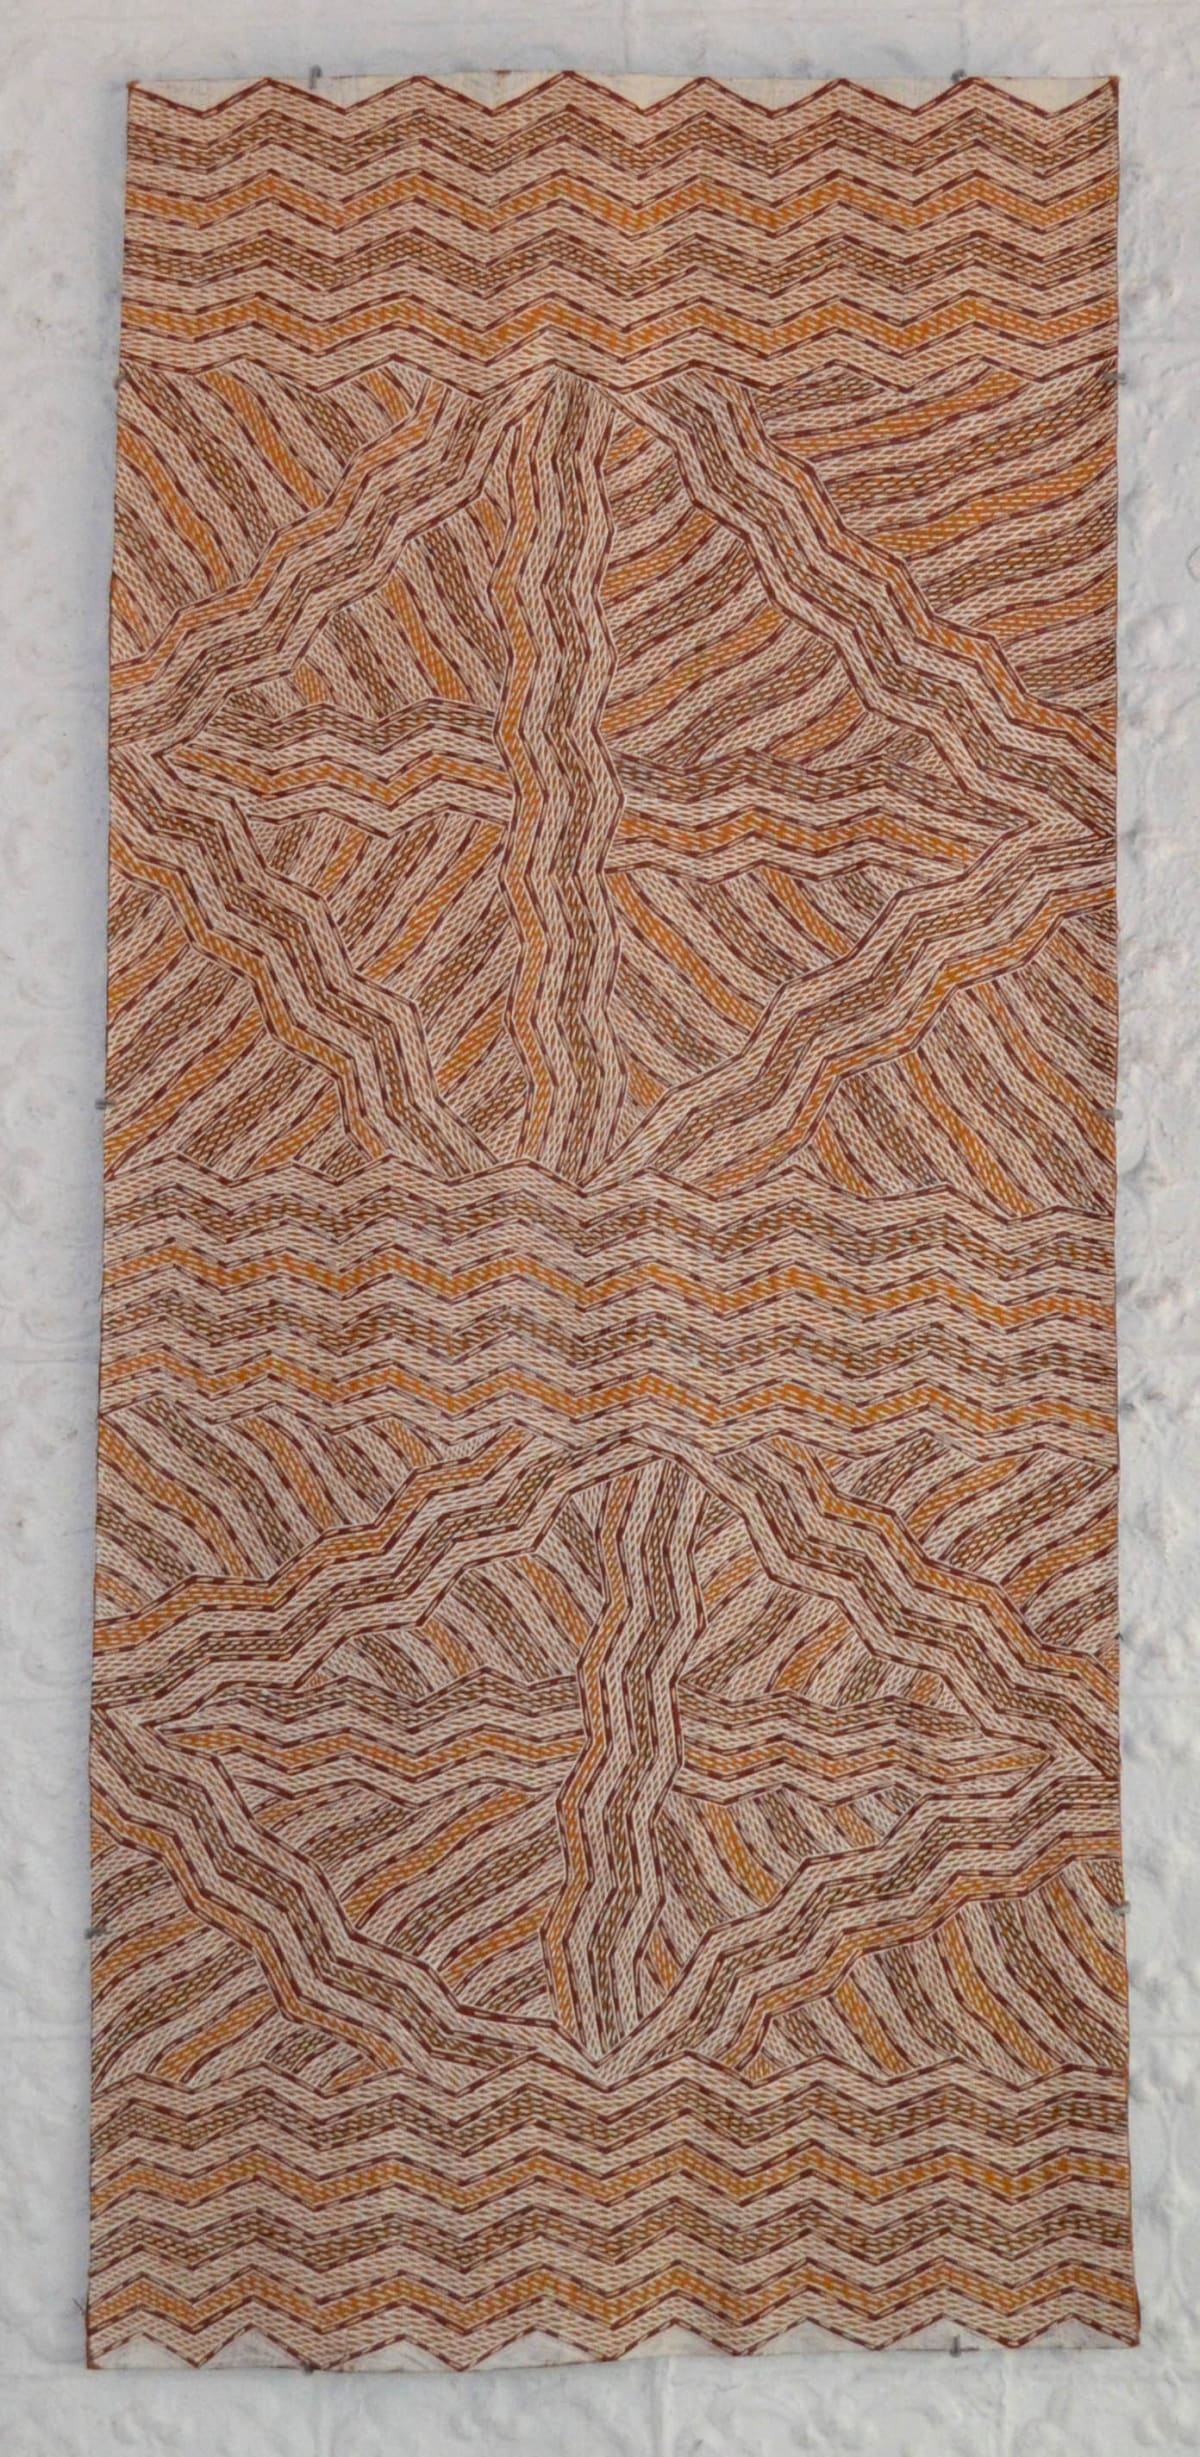 Manini Gumana Garrapara natural earth pigment on bark 137 x 62 cm